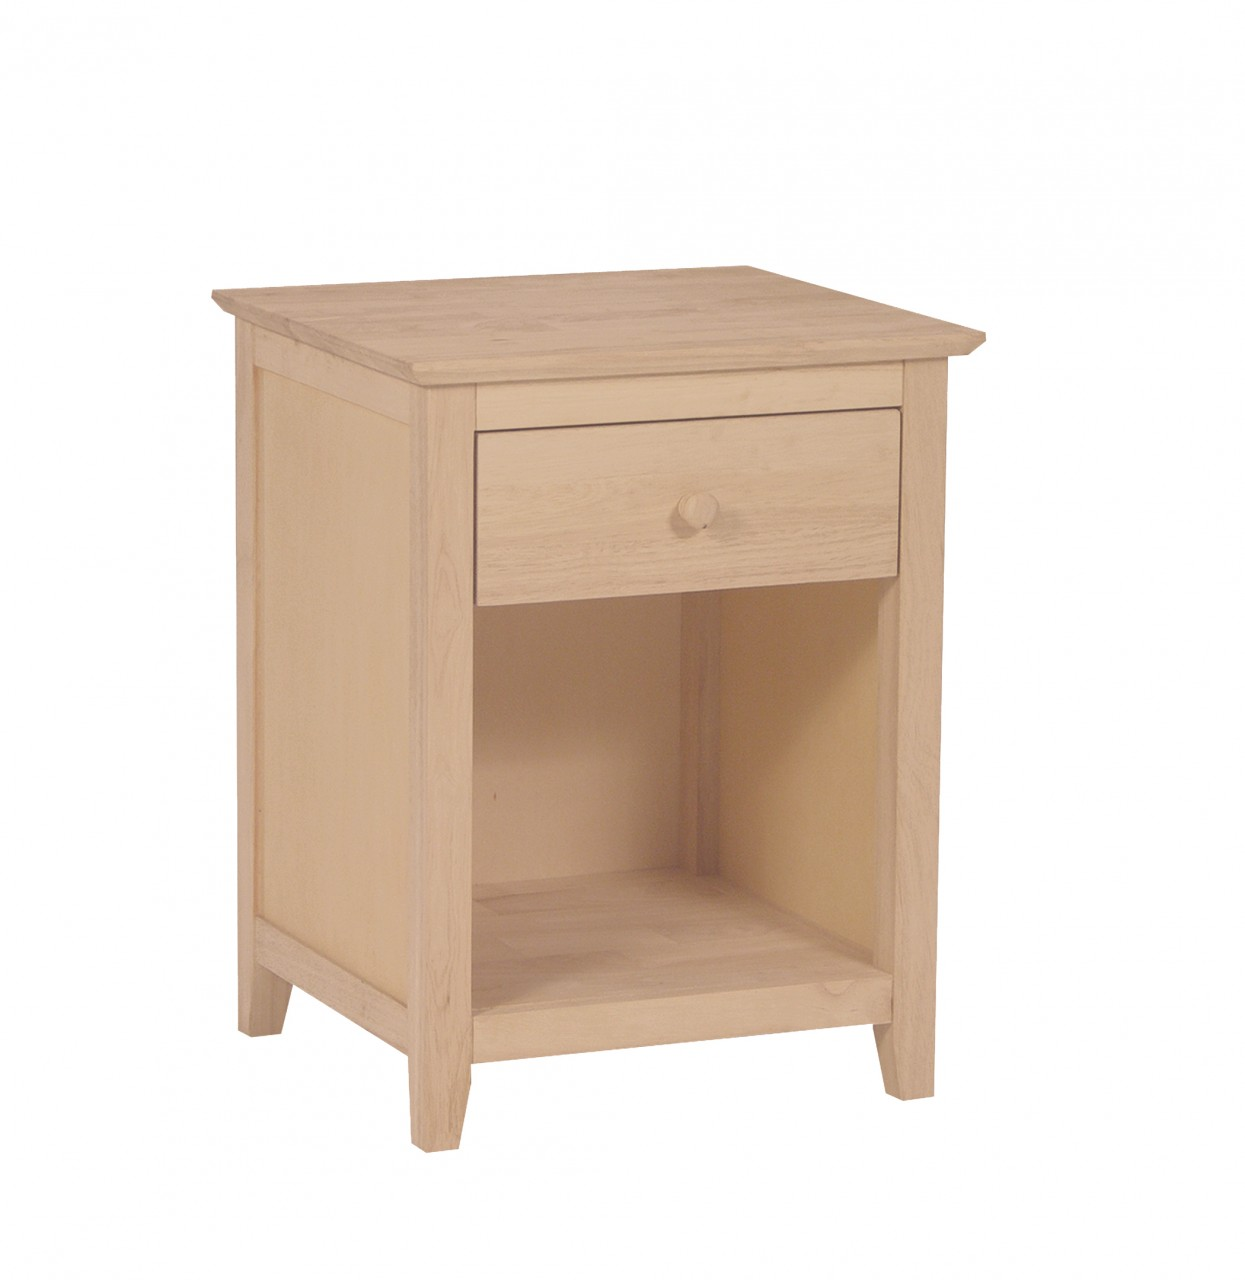 Unfinished Lancaster Drw Nightstand Bedroom Furniture Ideas Pine Oak Solid Wood Dresser Window Seat With Drawers Wooden Designs Apppie Org